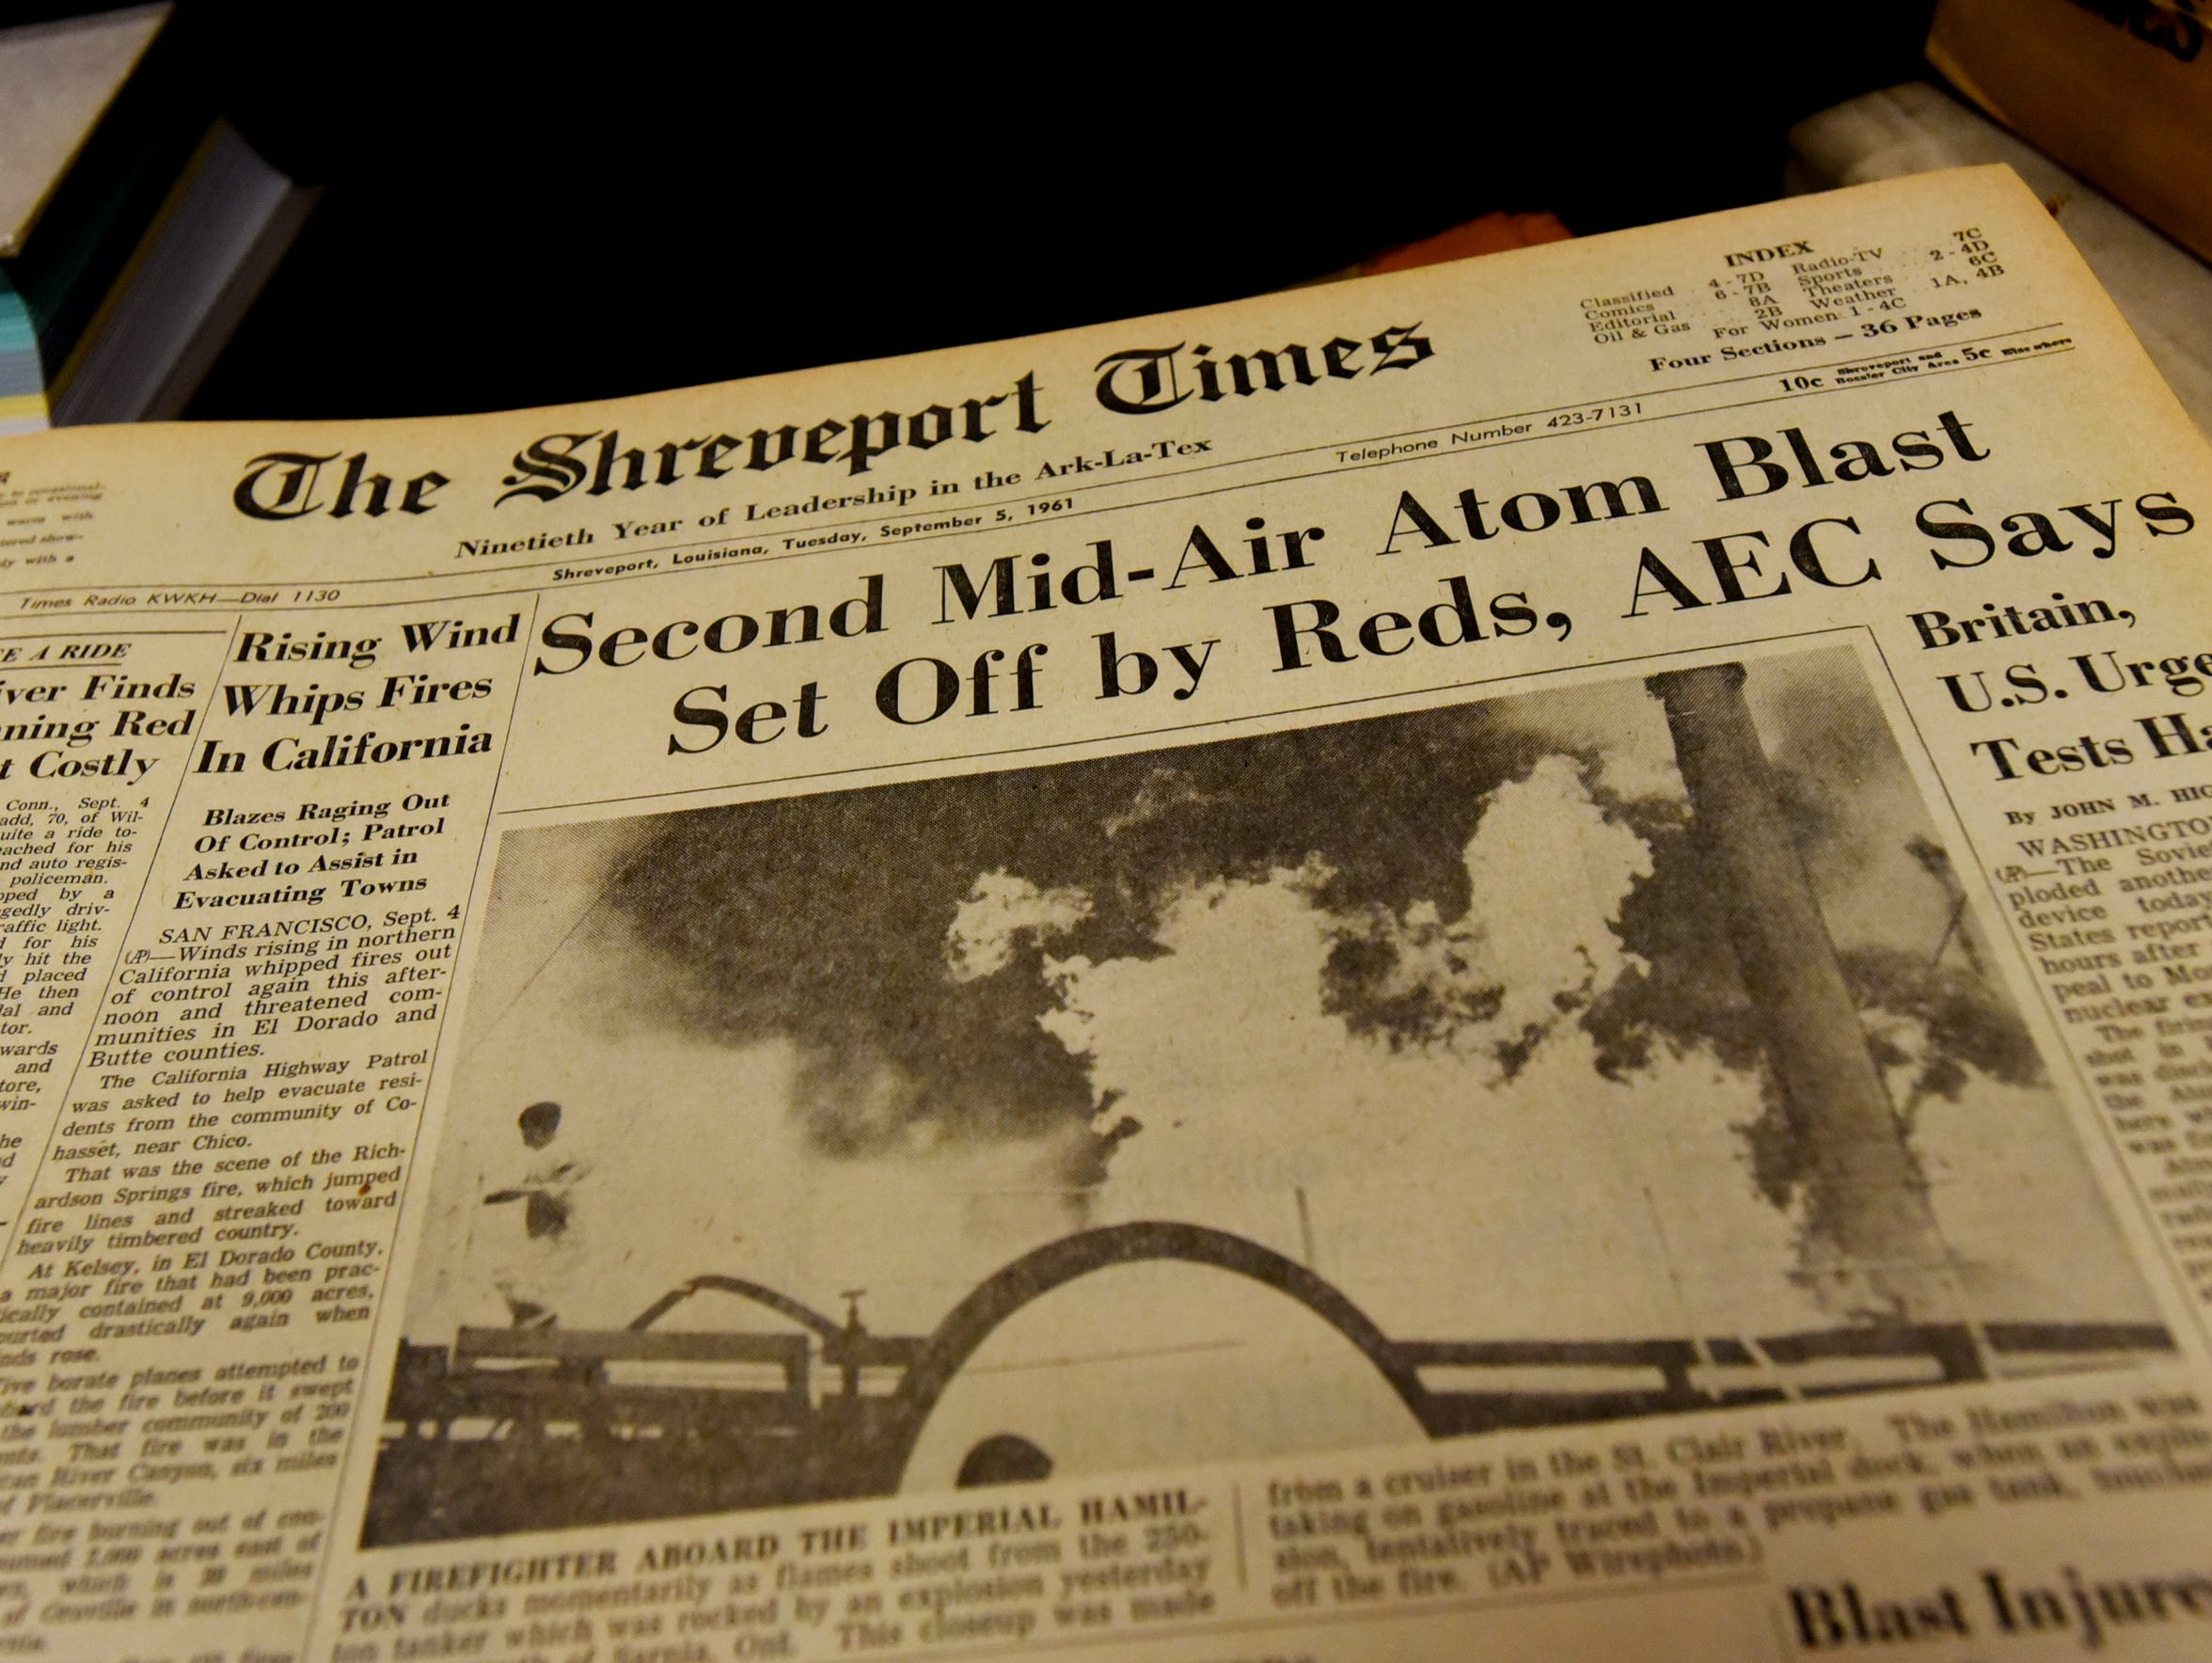 The A-1 story on the September 5, 1961 edition of The